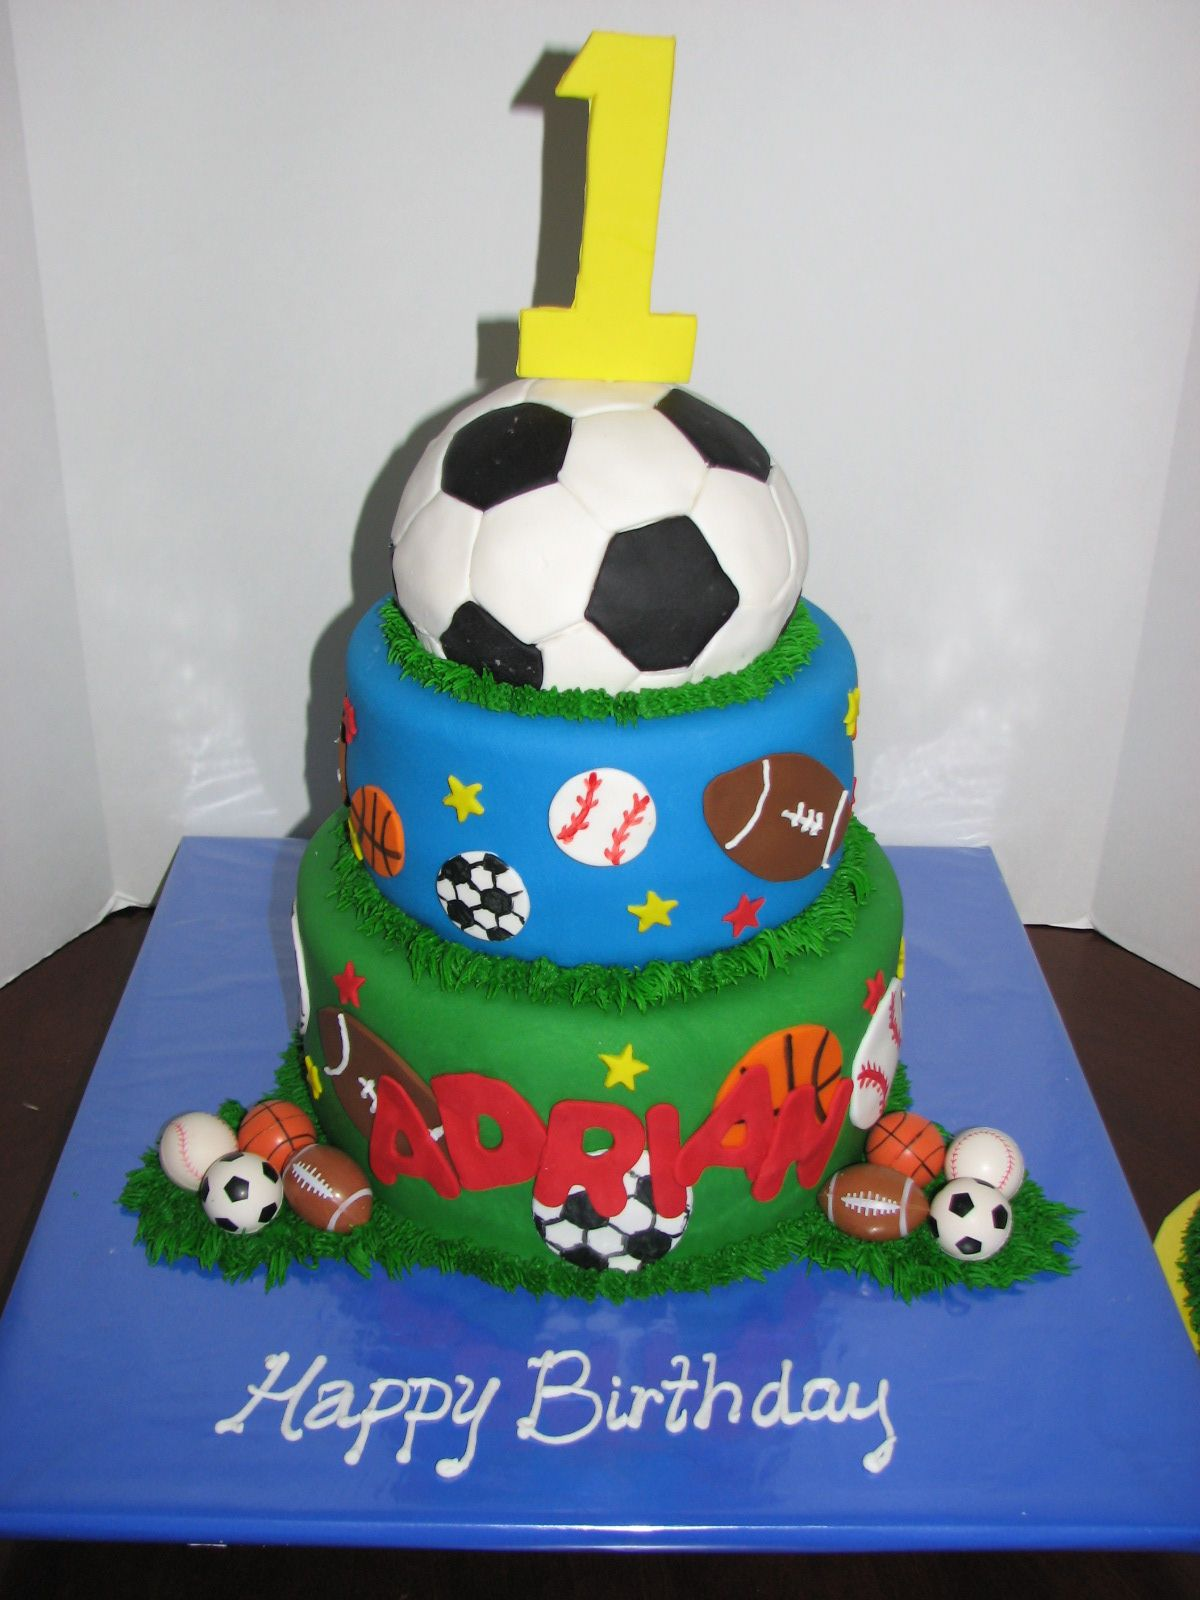 Sports cake but with a basketball on top minus the 1 on top